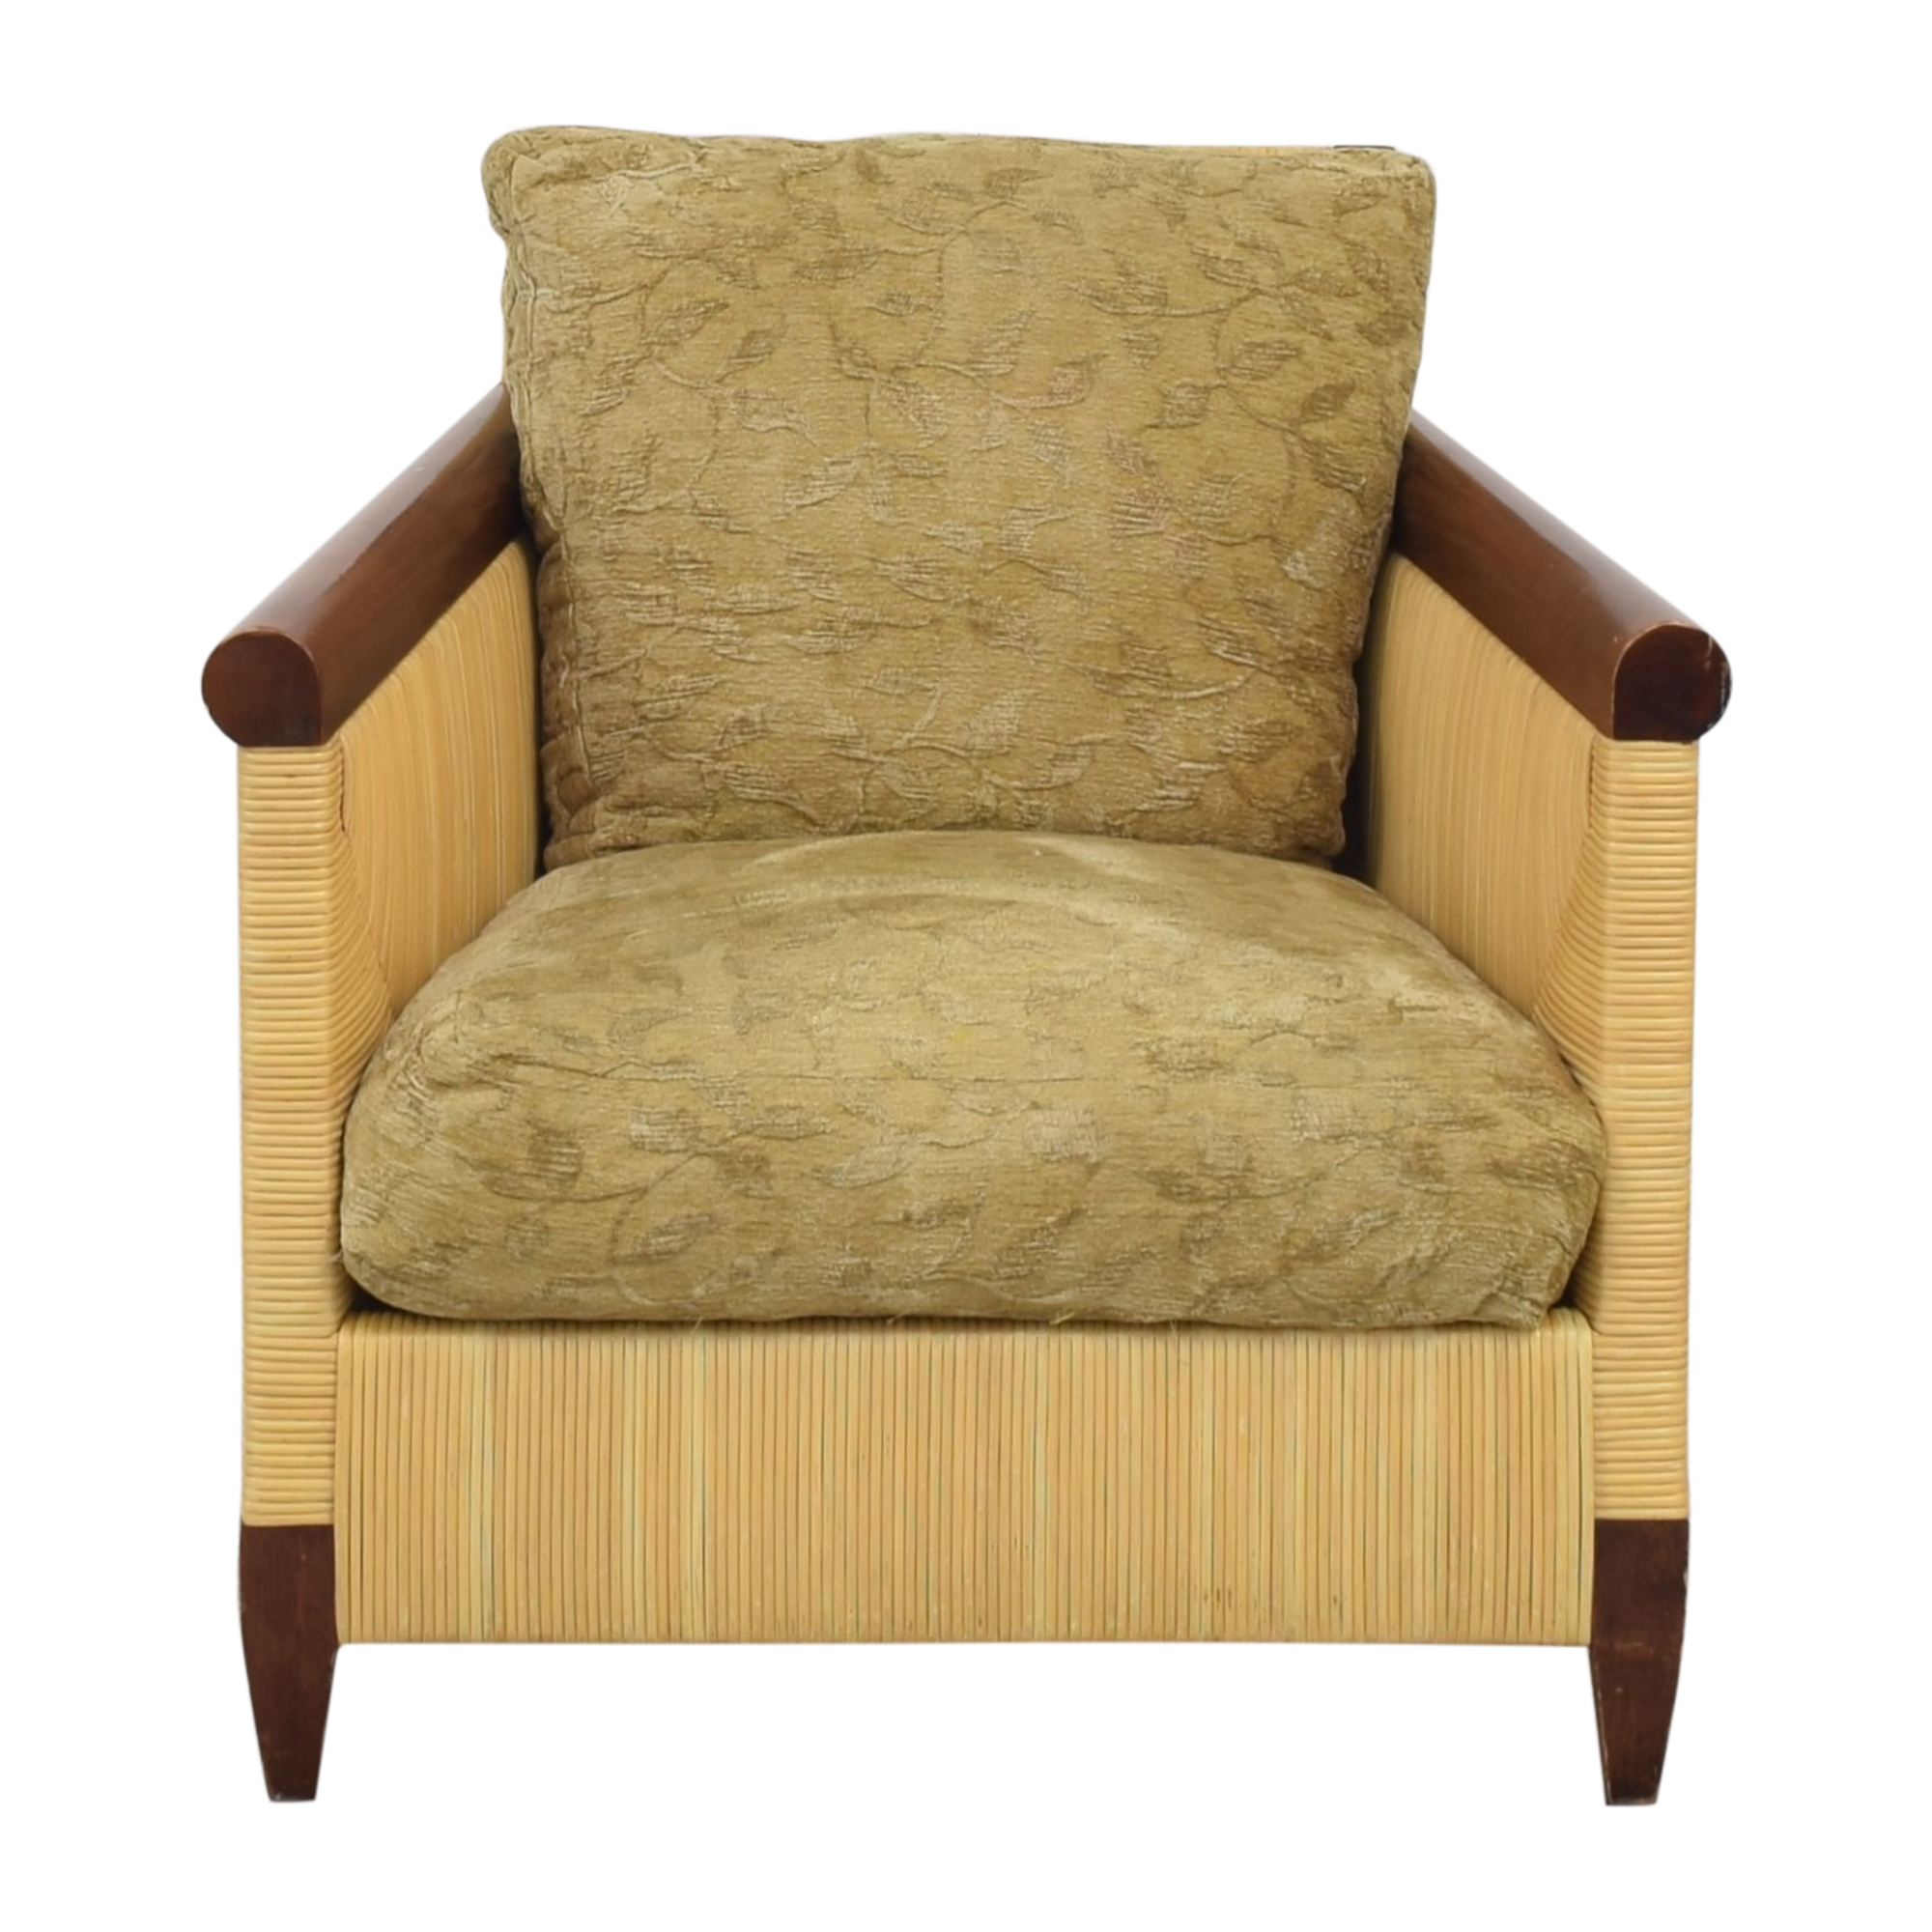 Donghia Donghia by John Hutton Mahogany and Wicker Lounger nj